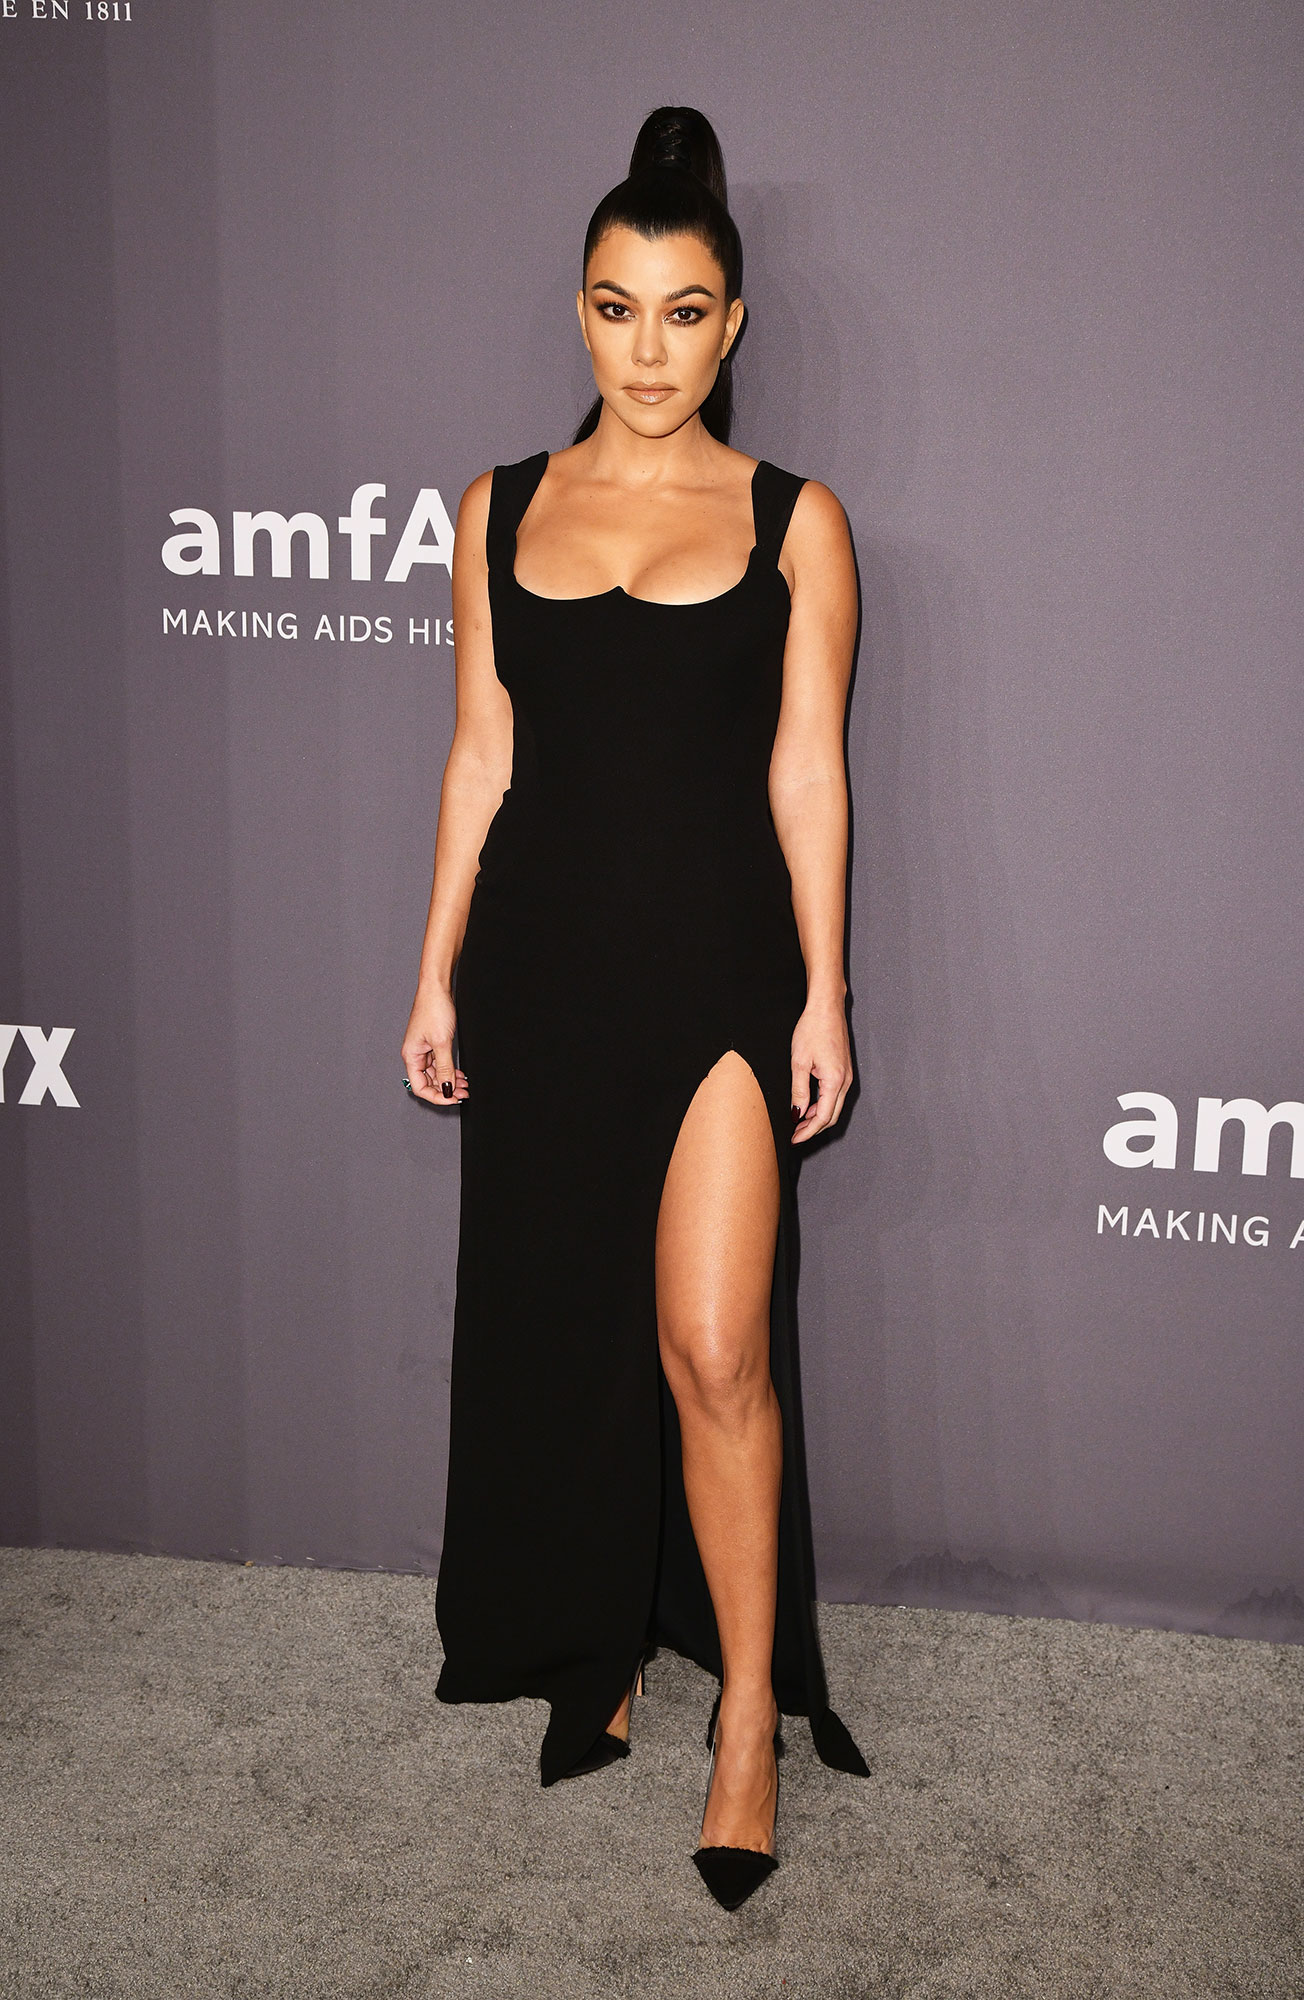 Happy 40th Birthday, Kourtney Kardashian - Giving black tie dressing a sexy spin, the Poosh founder rocked a slitted Versace gown and Gianvito Rossi pumps at the 2019 amfAR New York Gala.